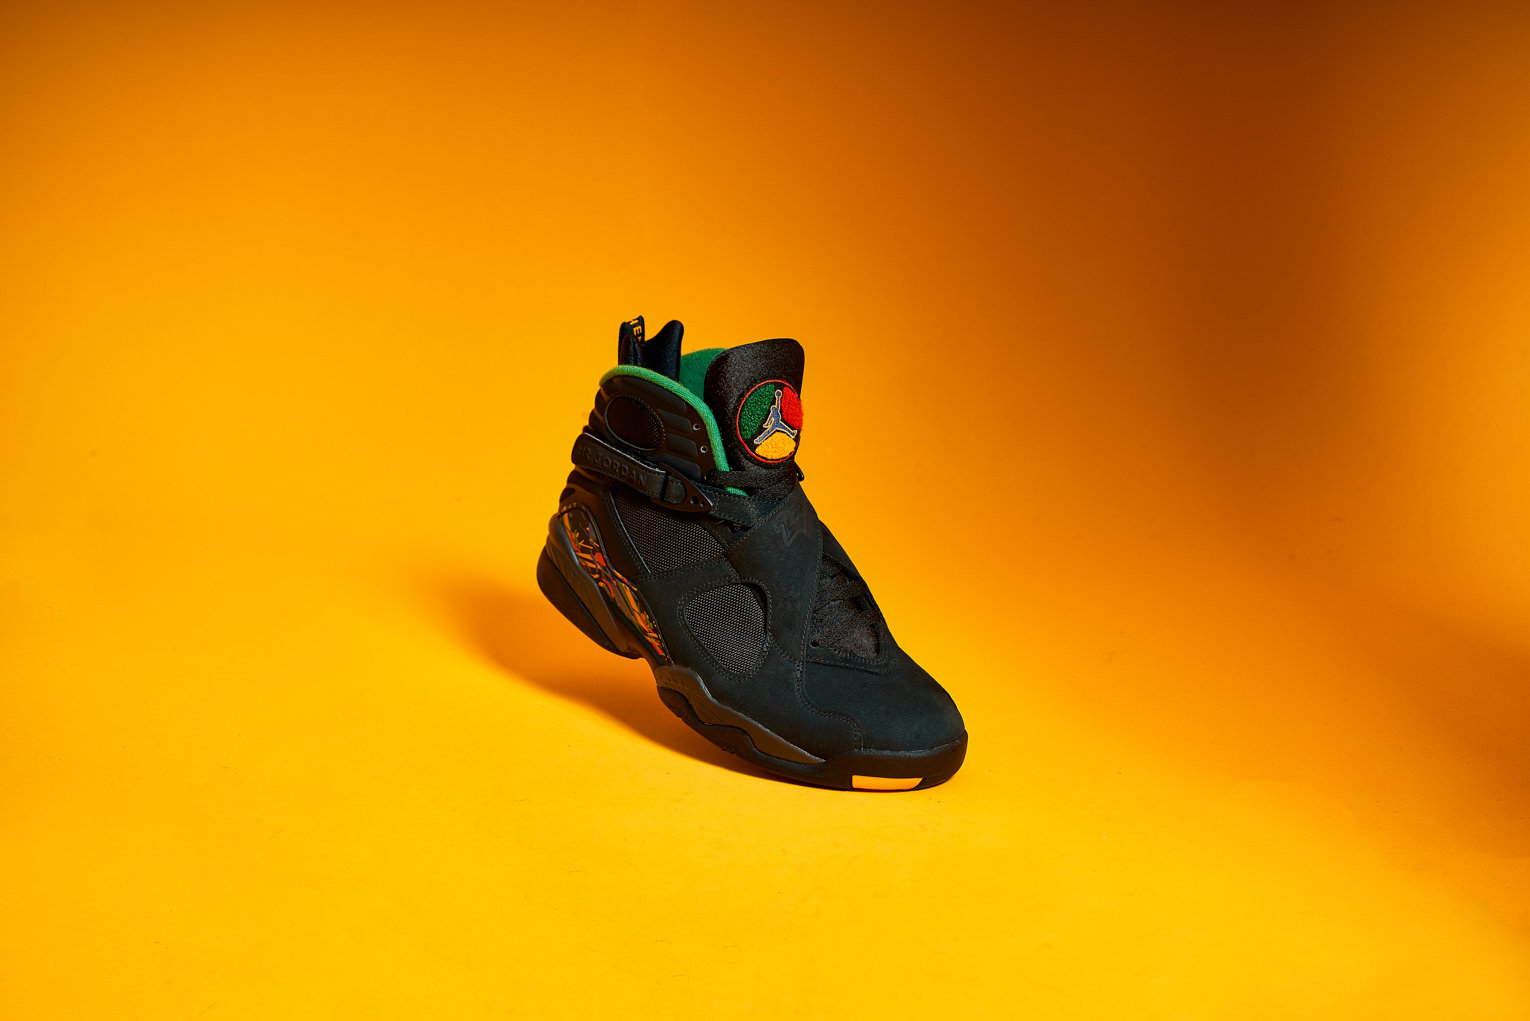 "034ab69e9a45 Air Jordan 8 Tinker ""Air Raid"" Color  Black Light Concord-Aloe  Verde-University Red Style Code  305381-004. Release Date  December 22"